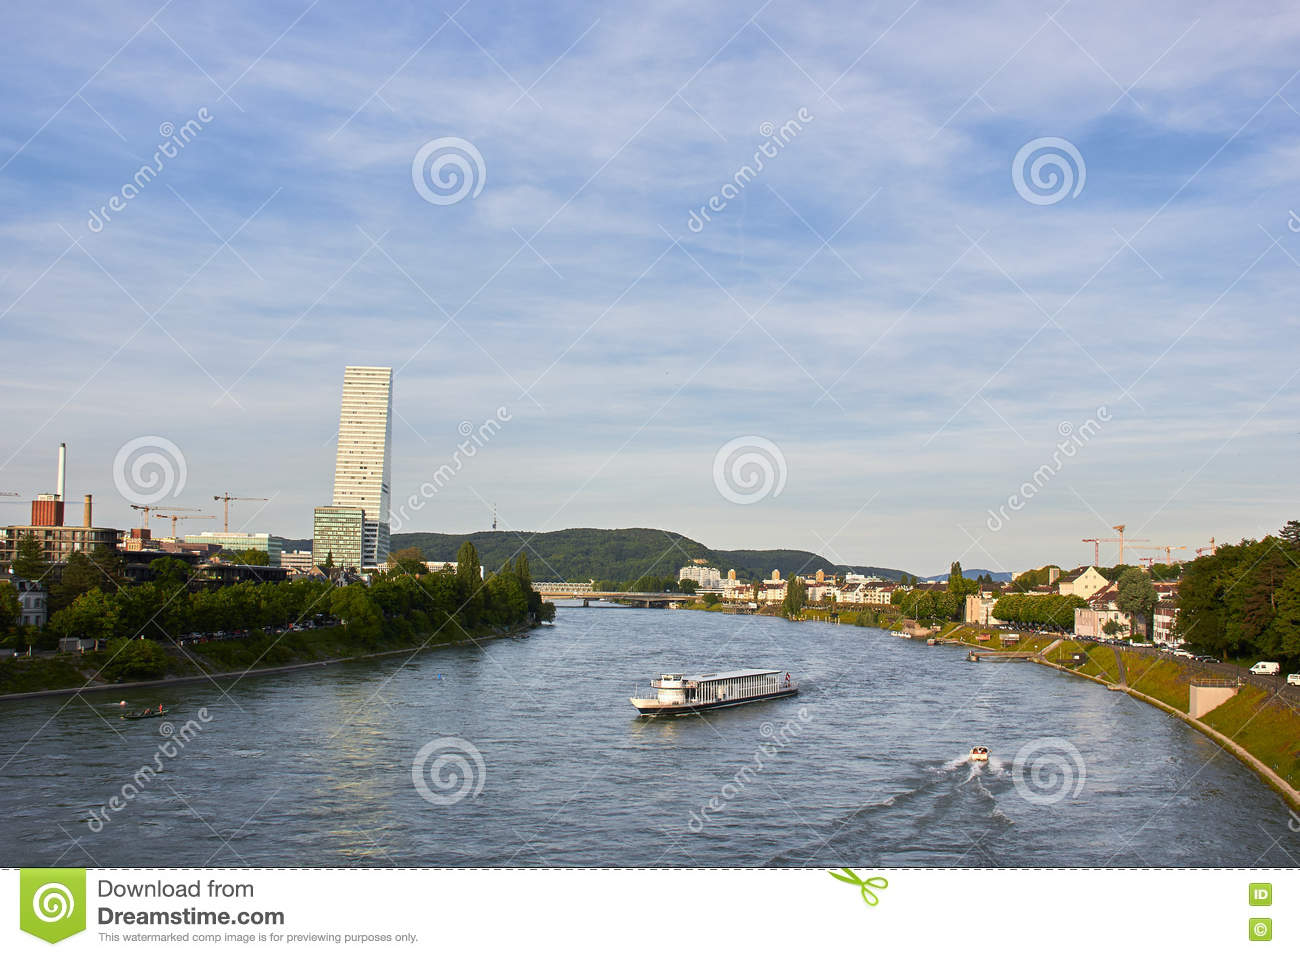 Panorama of Kleinbasel with Rhine, ships and Headquarter Building of Roche